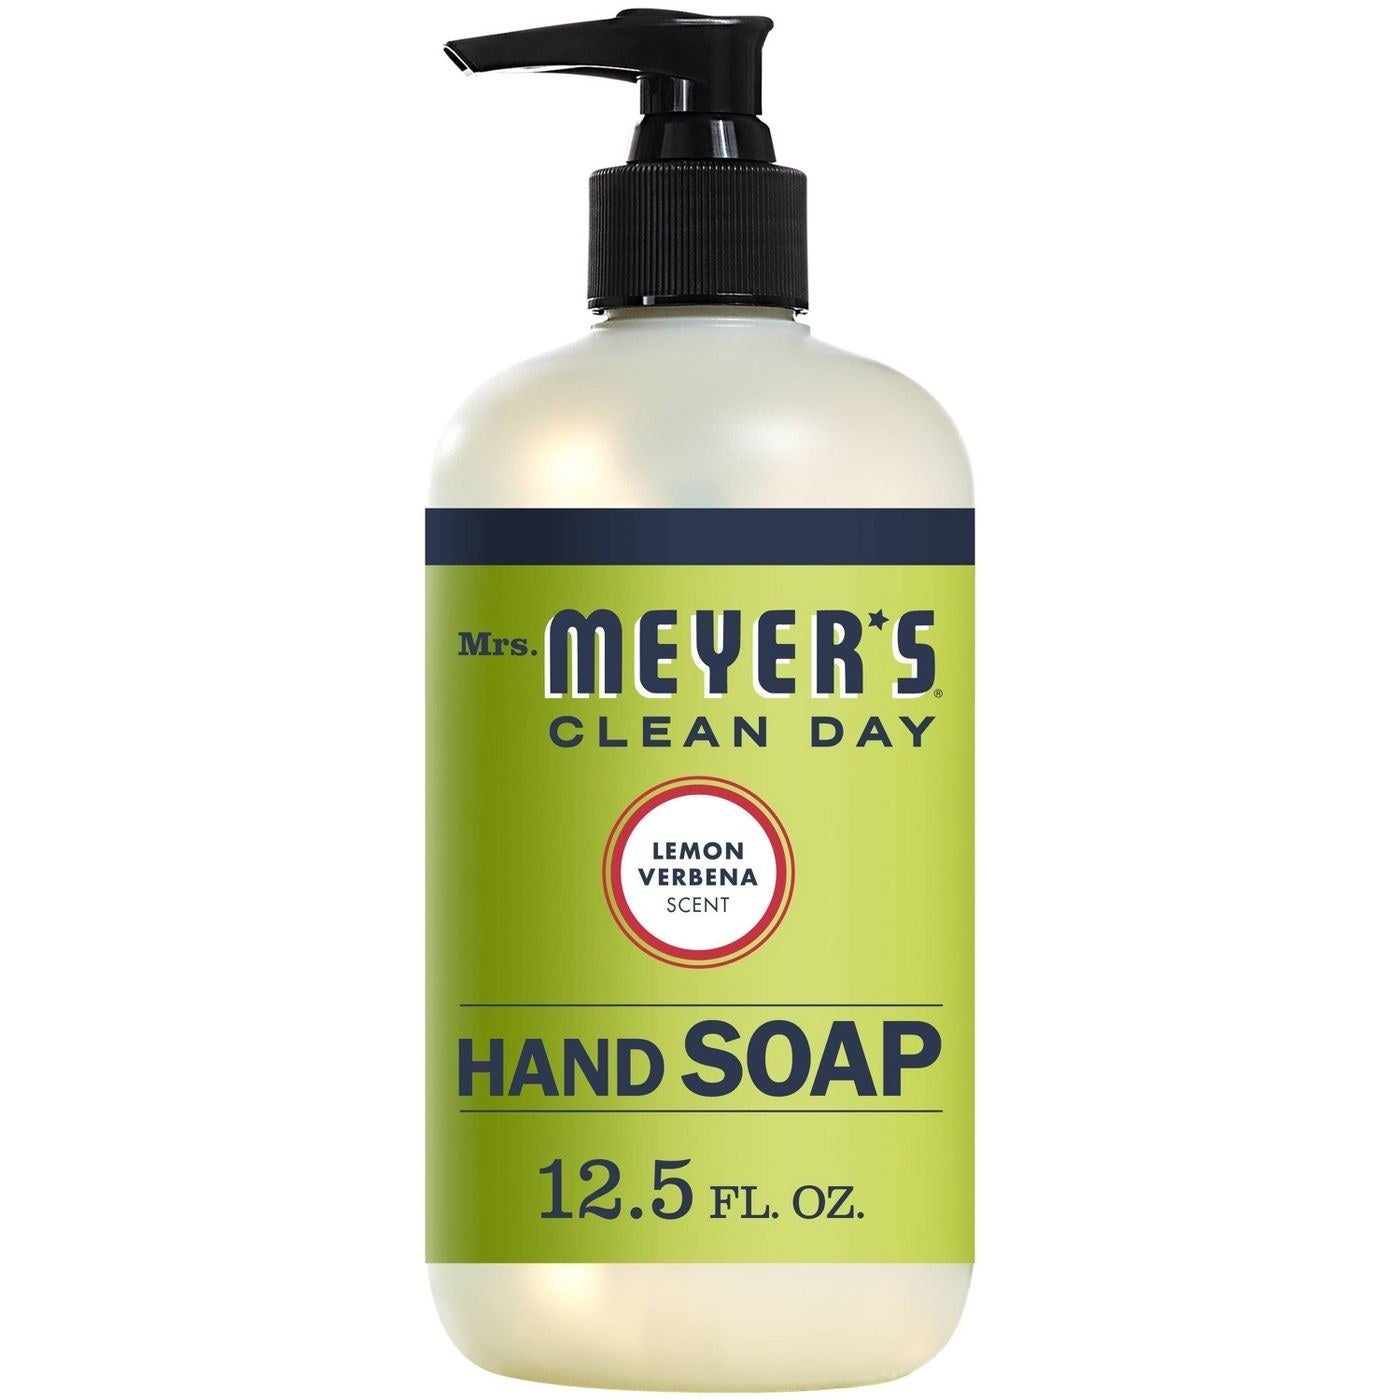 A lime green soap pump